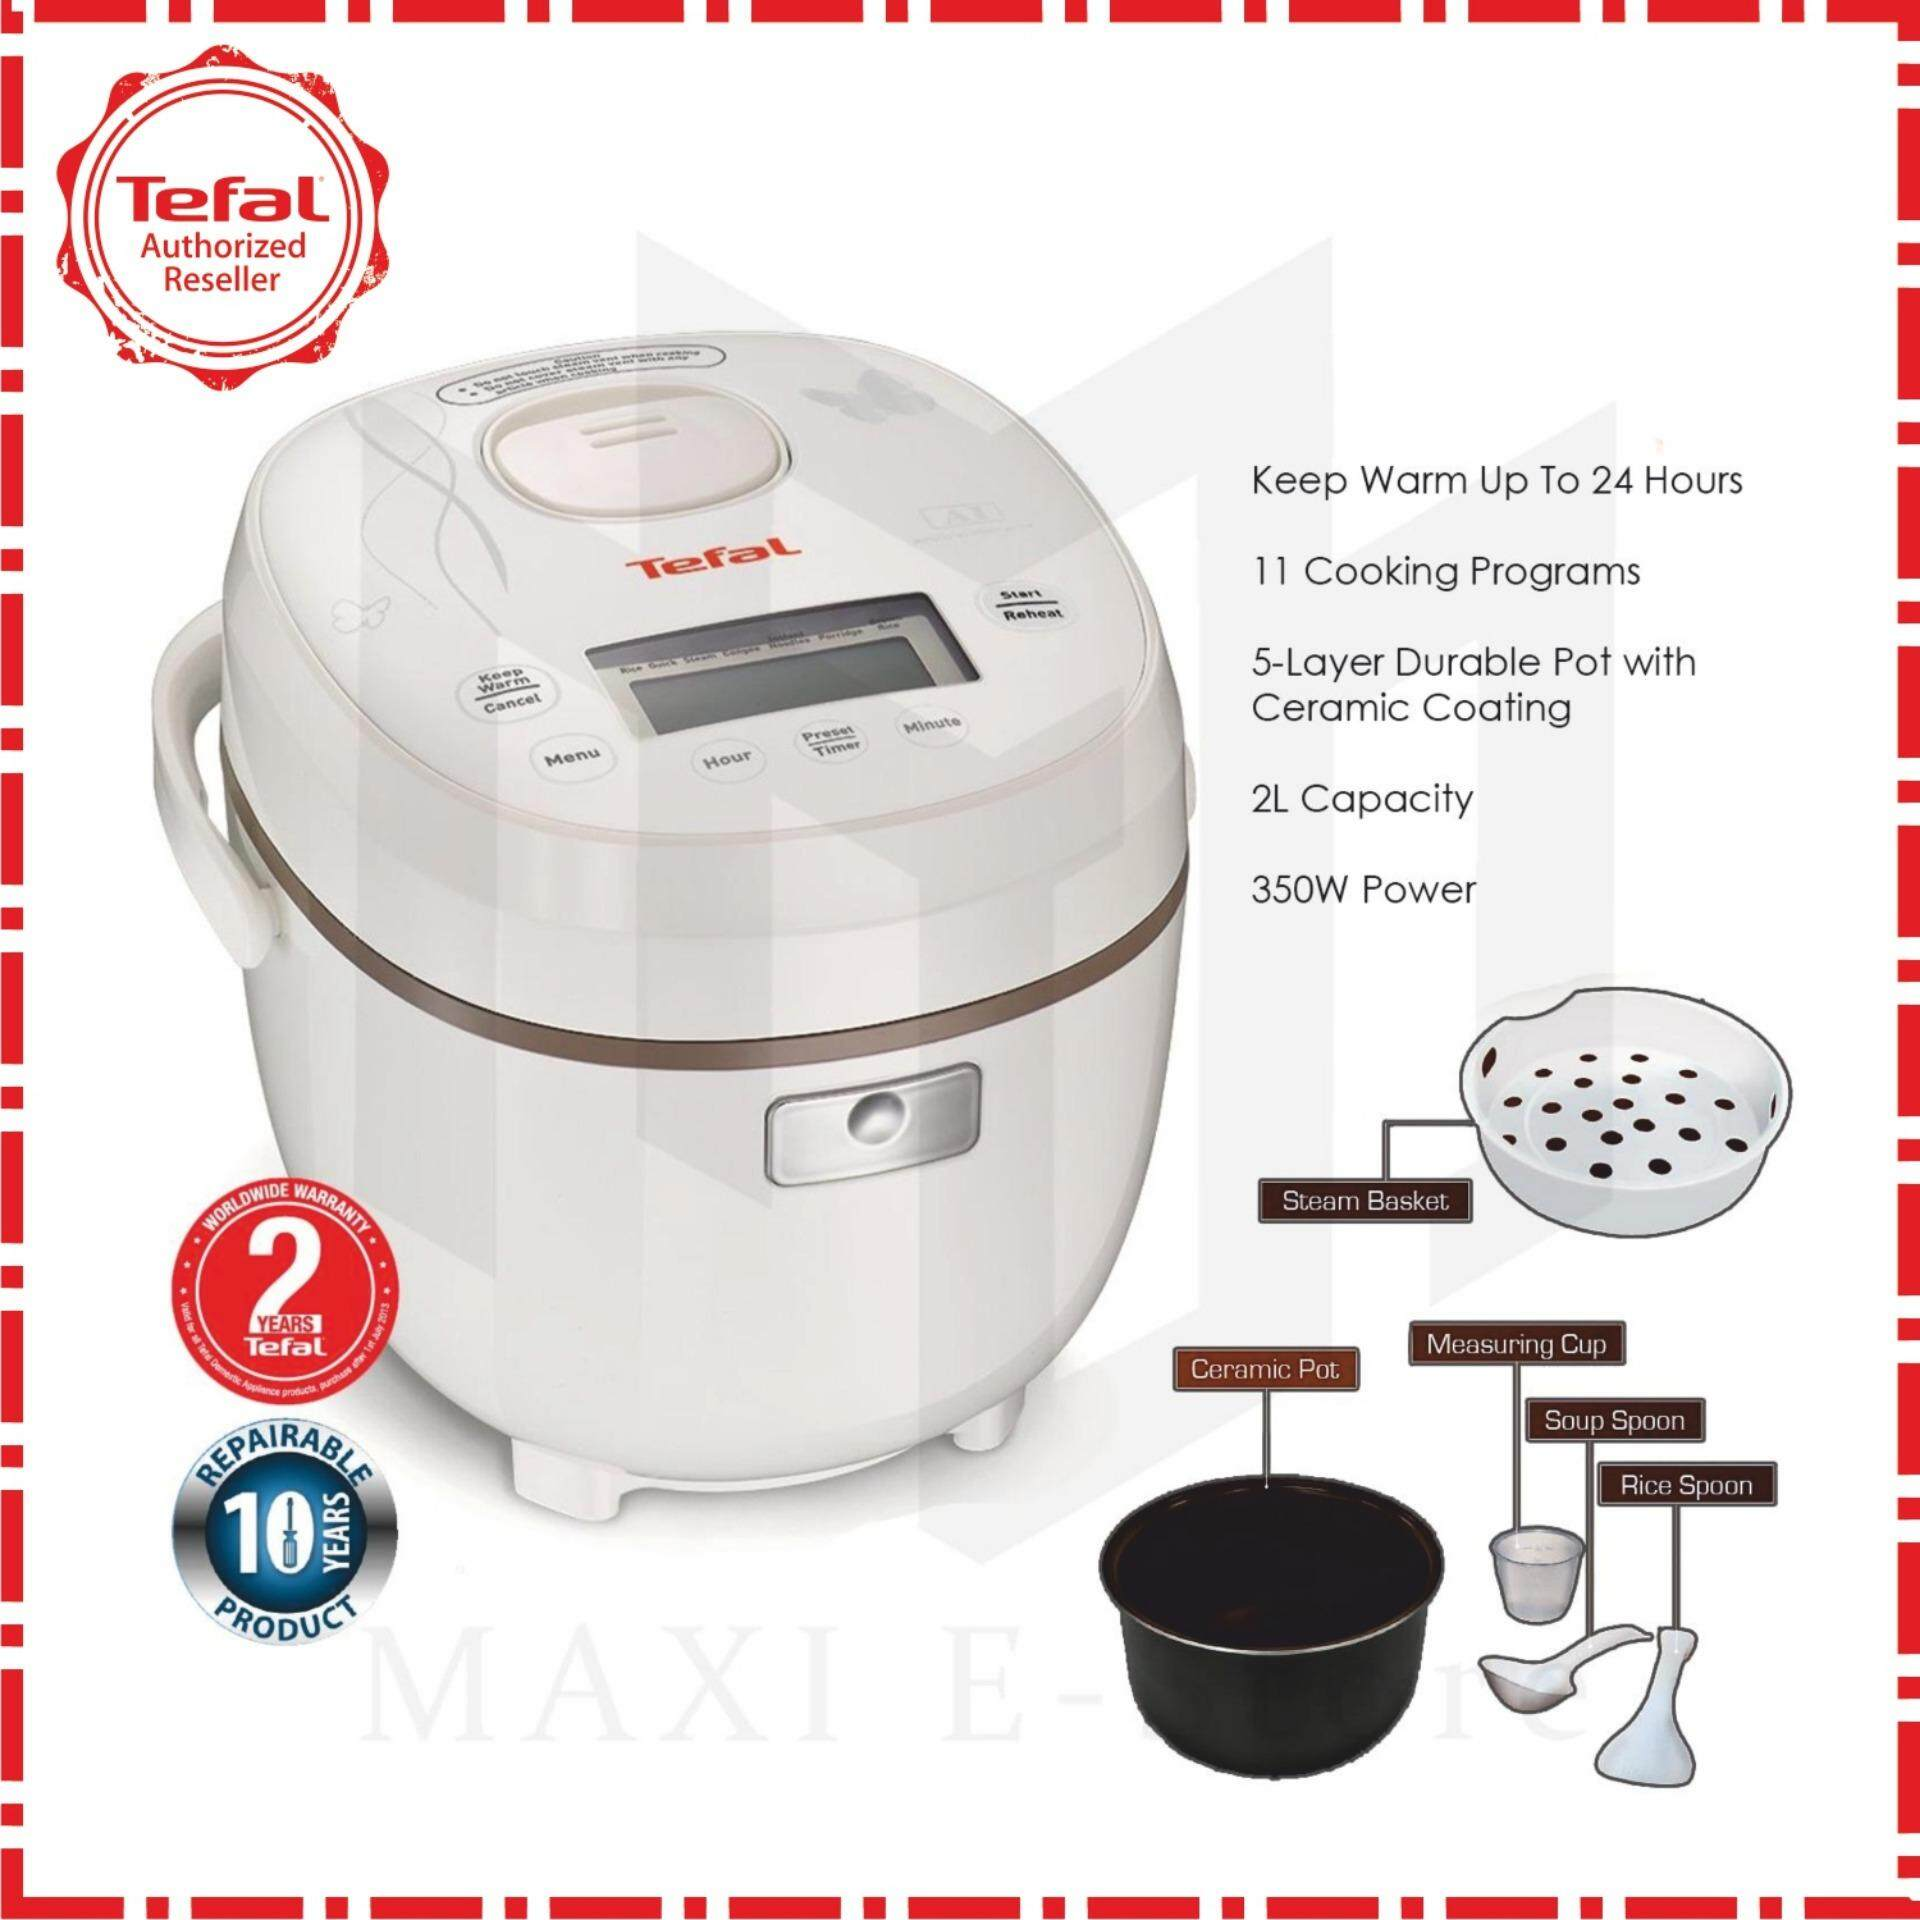 Tefal Rk5001 Mini Fuzzy Logic Rice Cooker 0.5l By Maxi E-Store